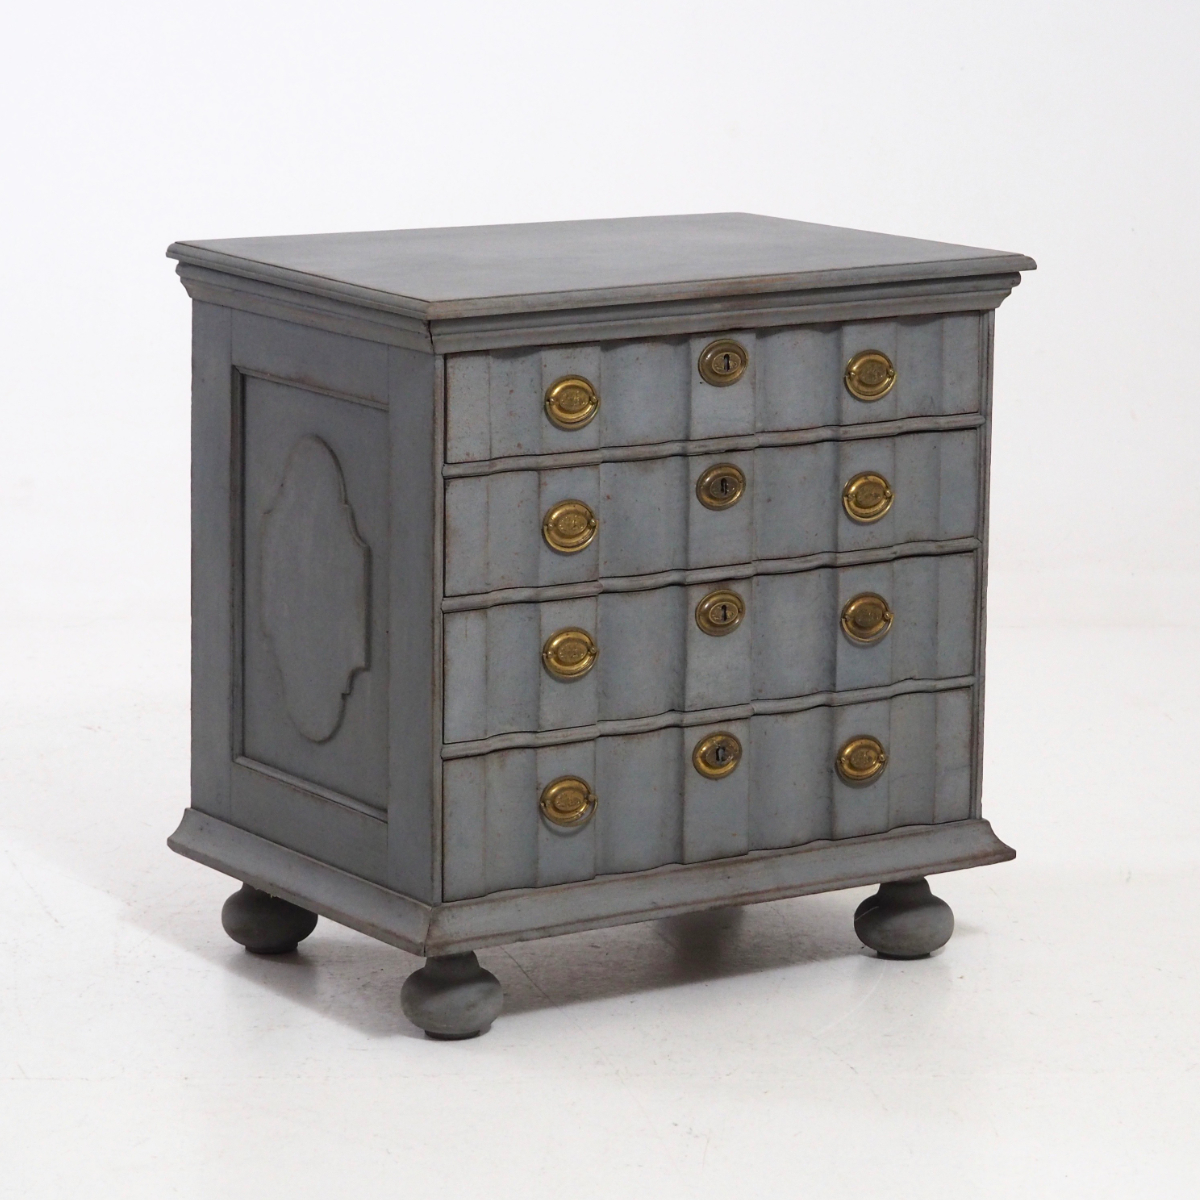 Rare Baroque chest, 18th C. - € 1.100